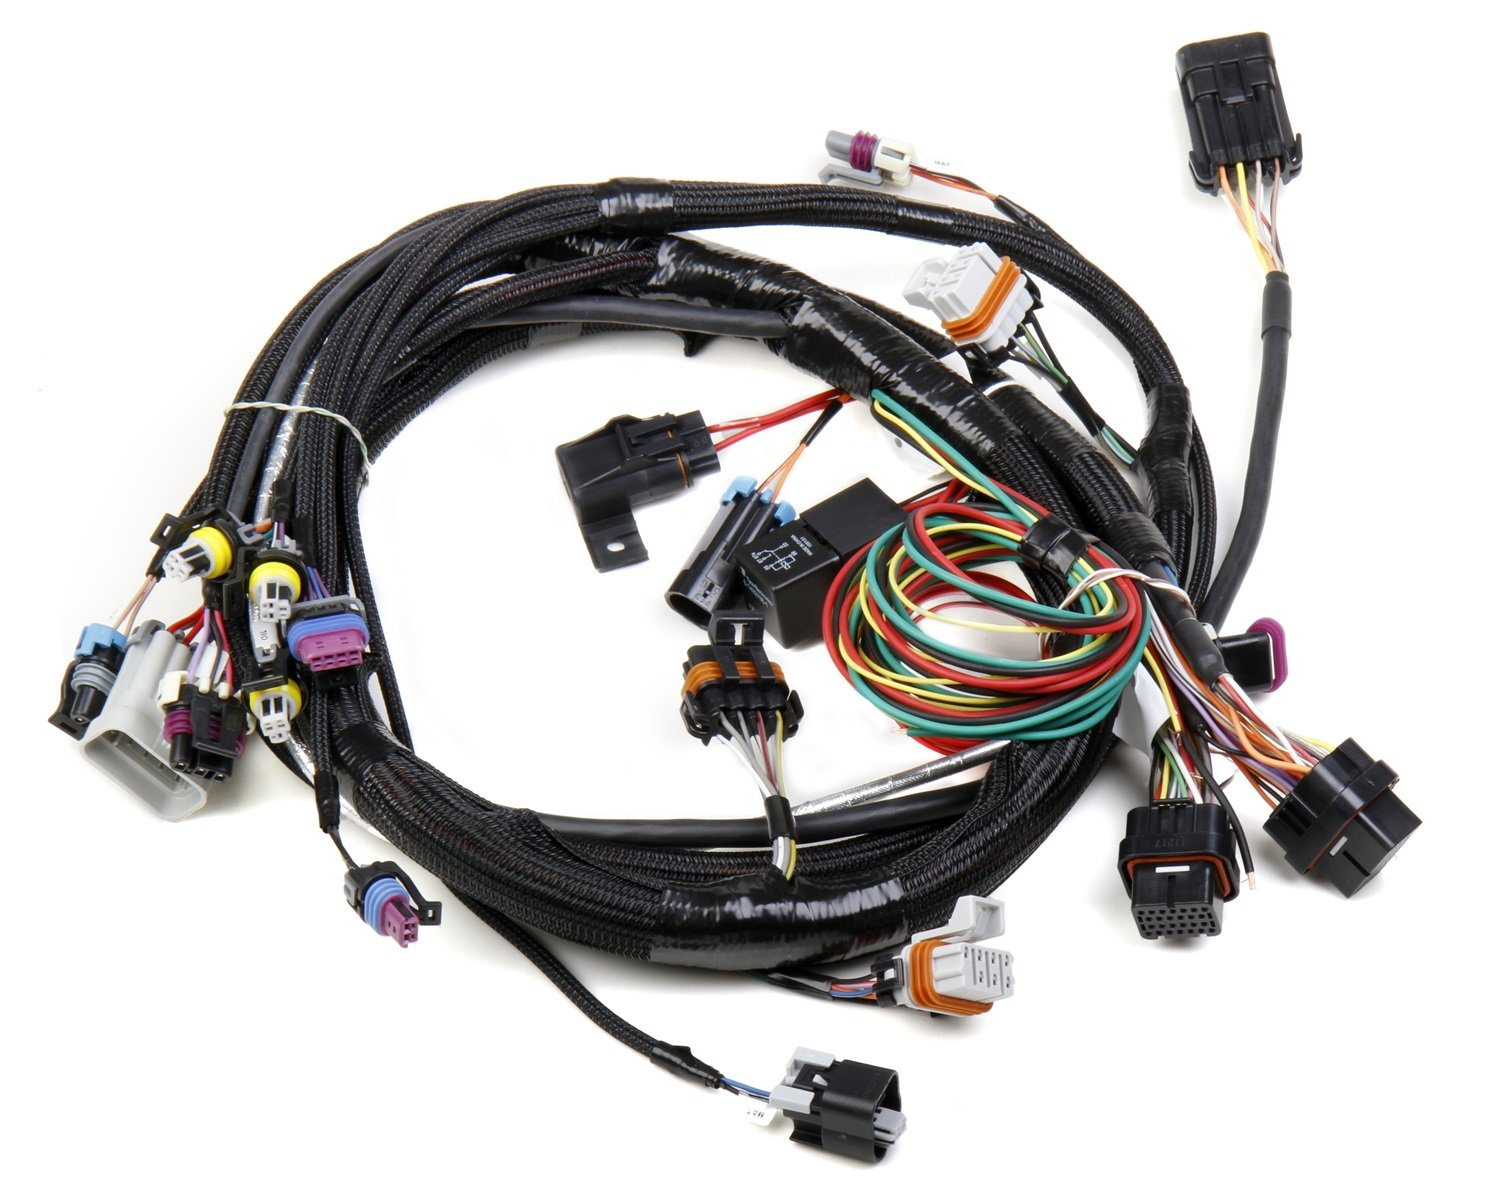 71R9M48Oc L._SL1500_ amazon com holley 558 102 ls1 main harness automotive 6.5 Diesel Wiring Harness at fashall.co